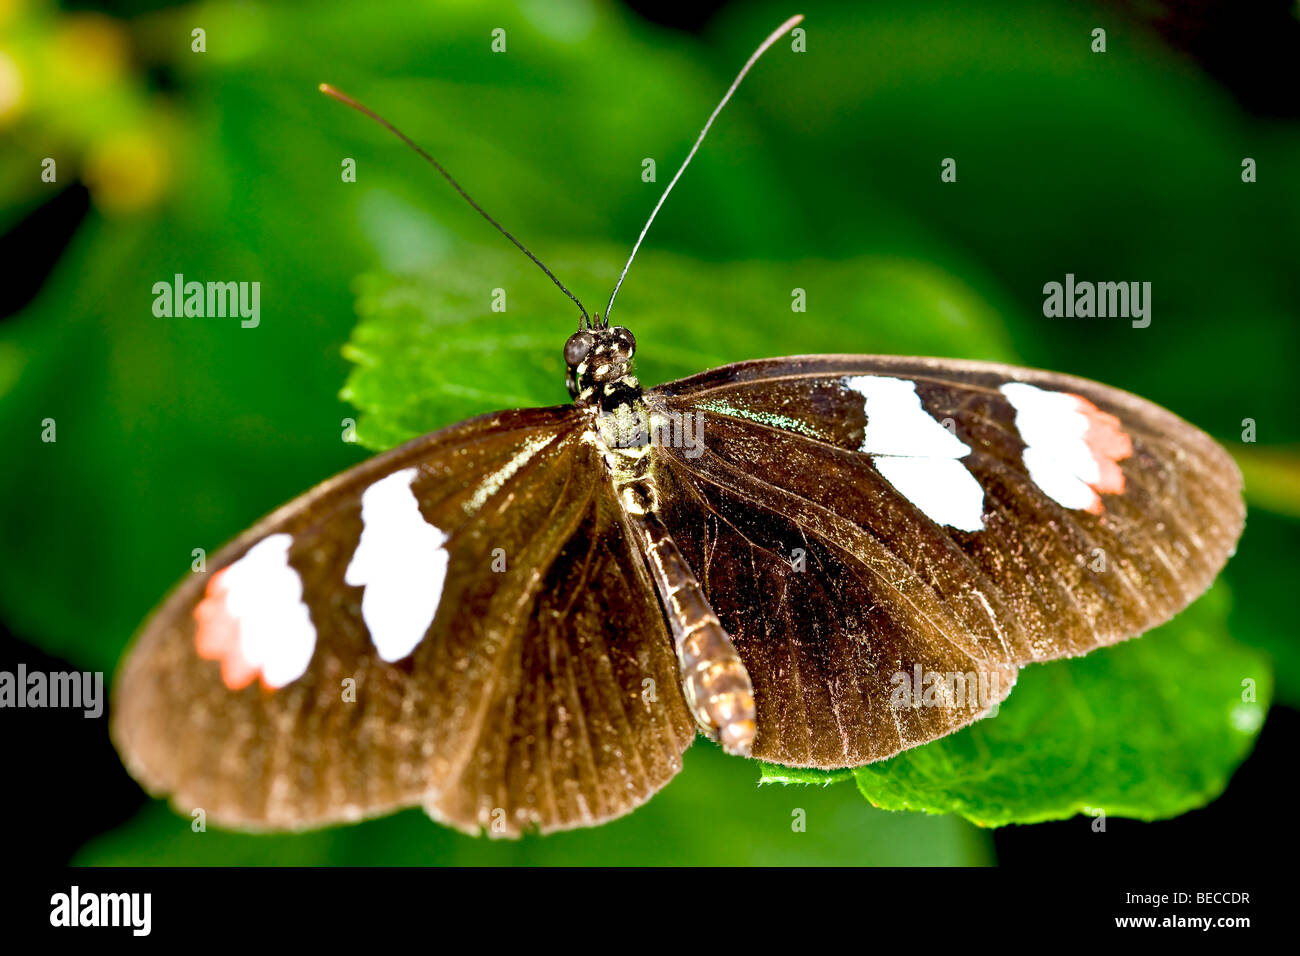 Longwing butterfly (Heliconius) - Stock Image